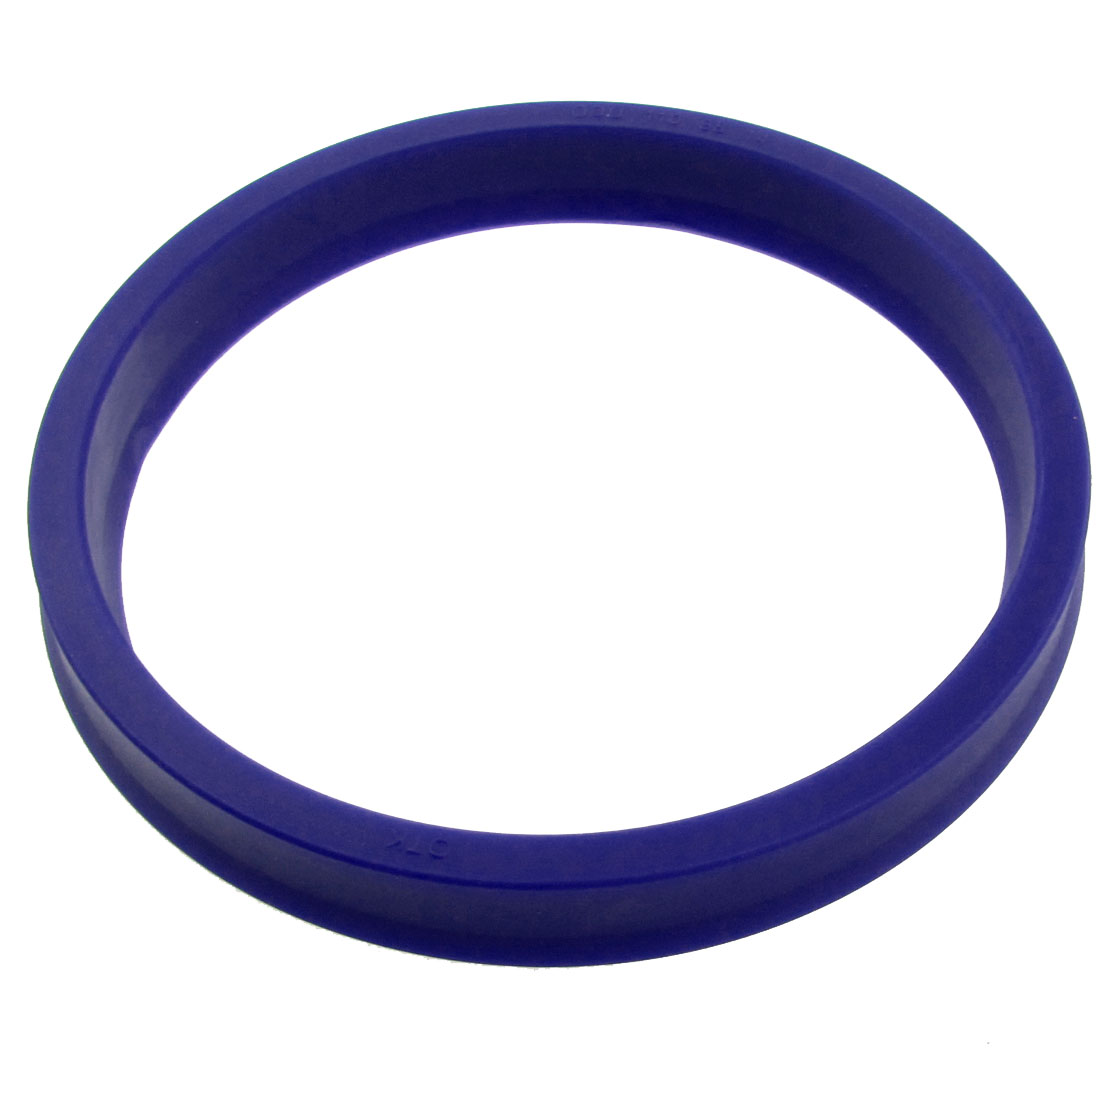 110mm x 94mm x 18mm Motorcycle Crankshaft Blue PU Hydraulic Oil Seal